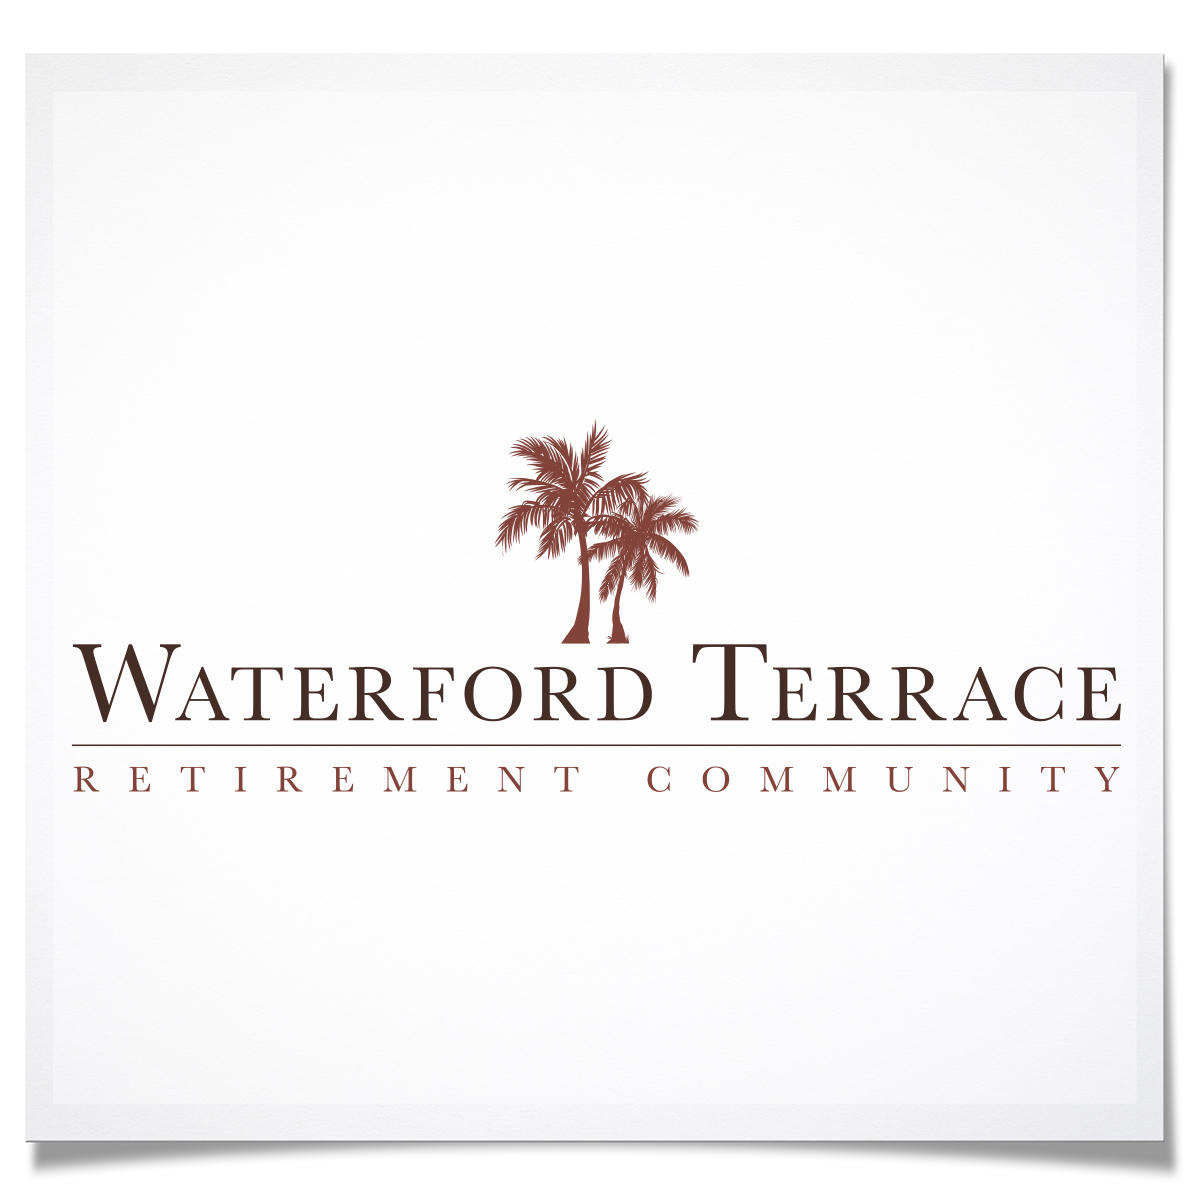 Waterford Terrace Retirement Community